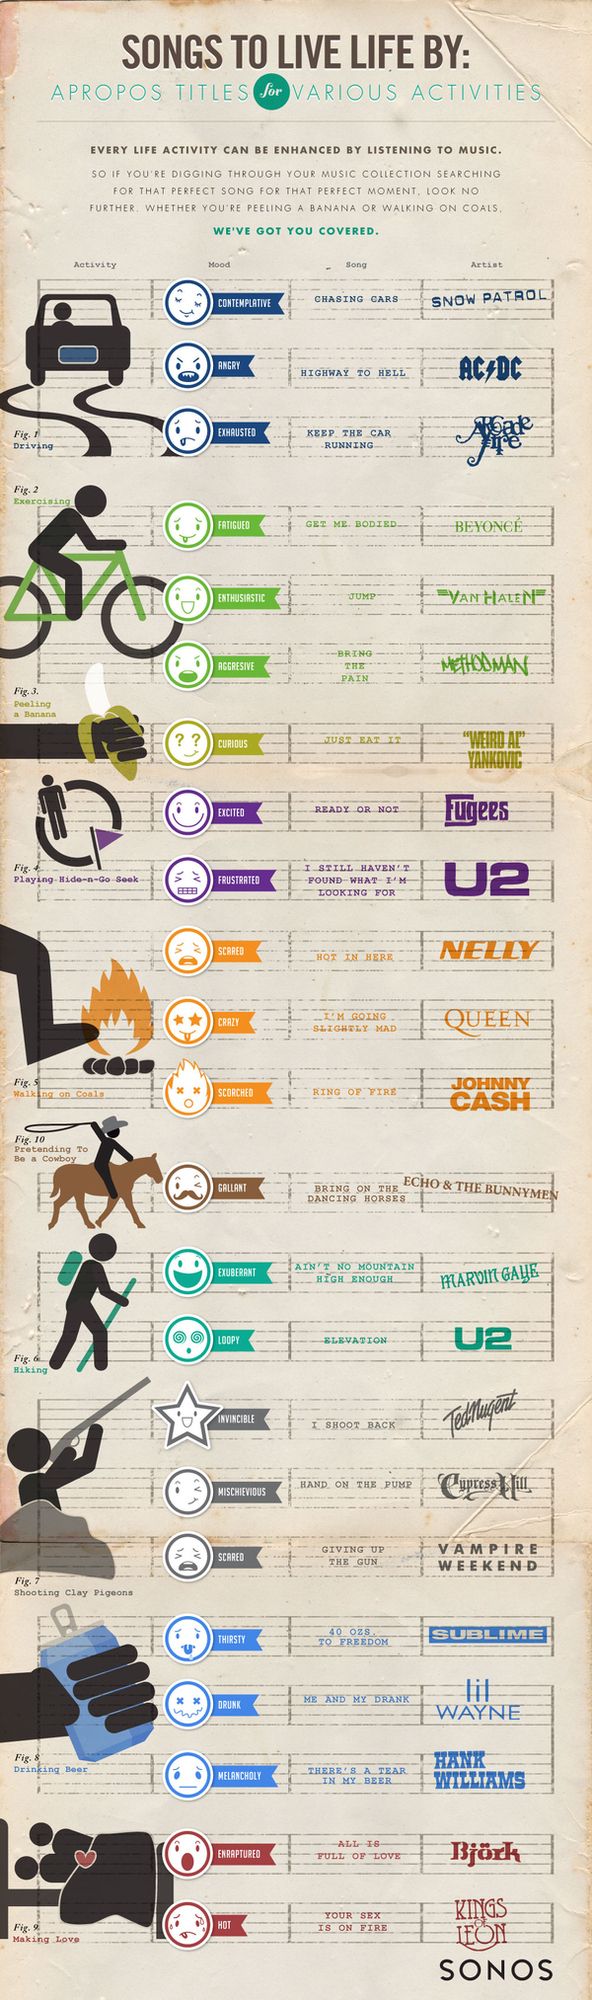 Songs To Live Life By [Infographic]